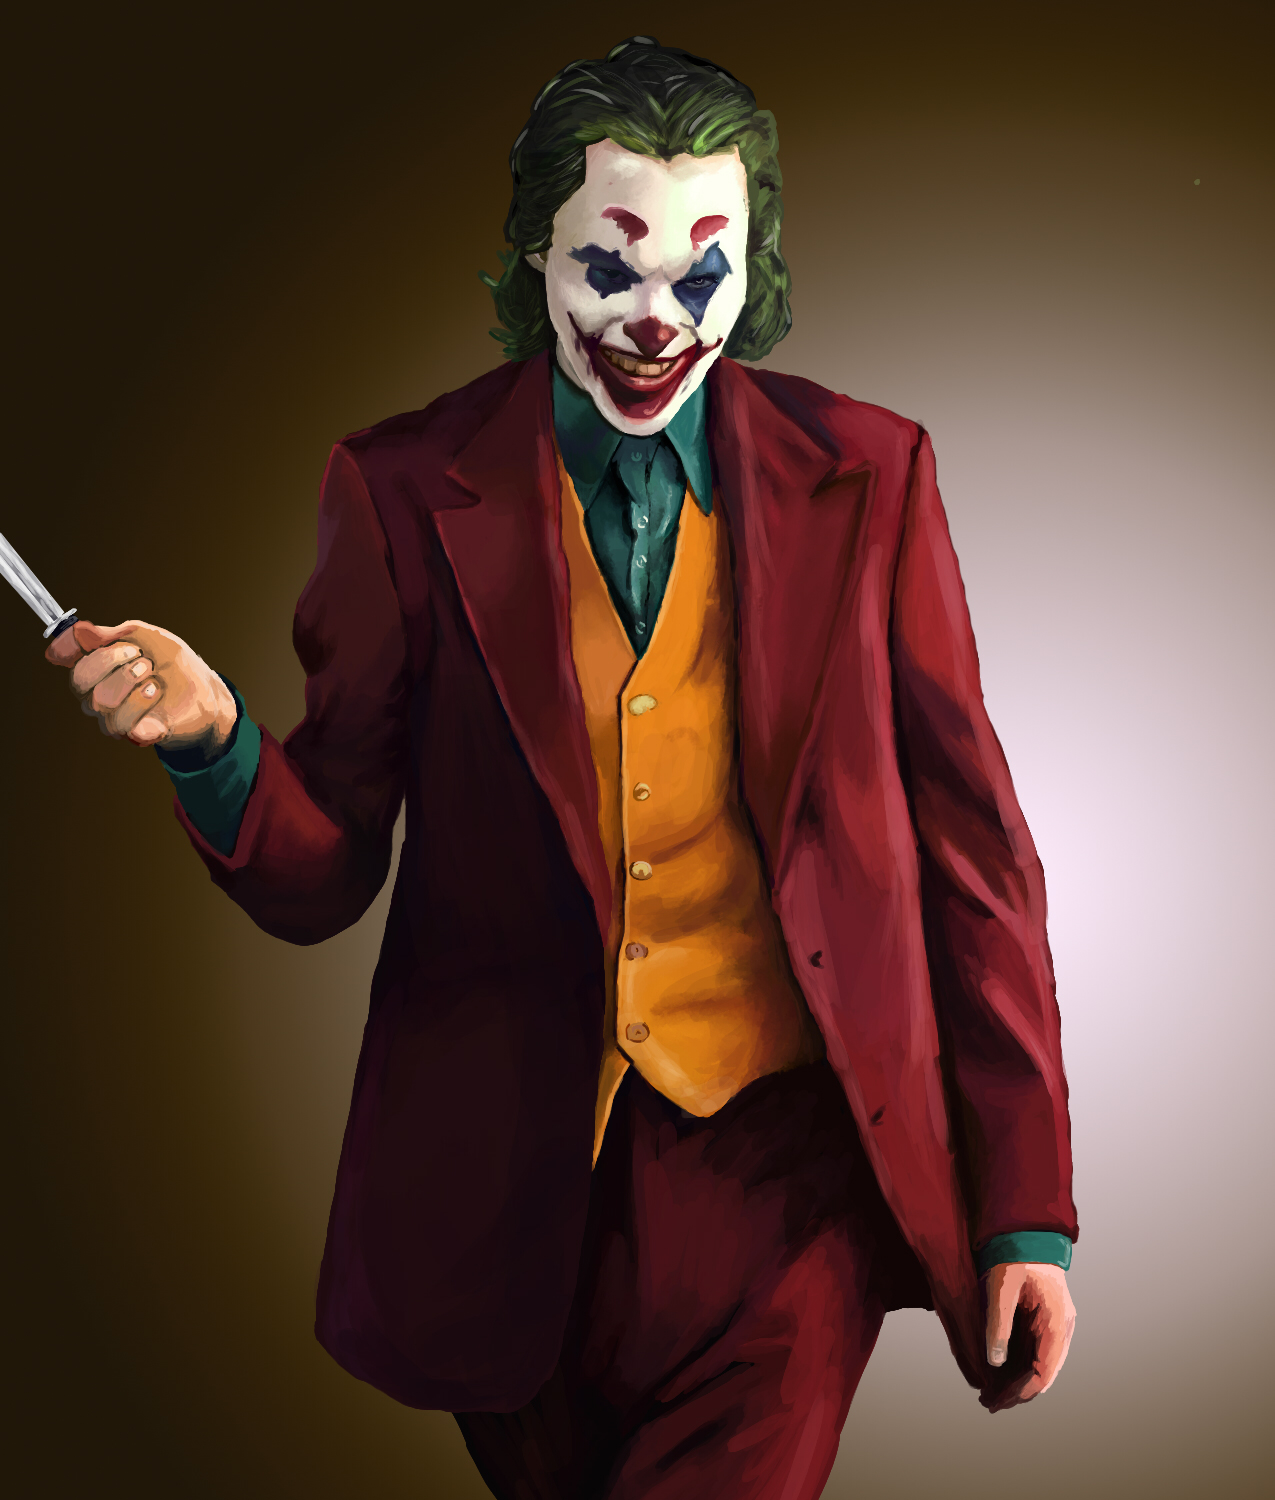 [Fan Art] My first attempt at digital painting. Joker